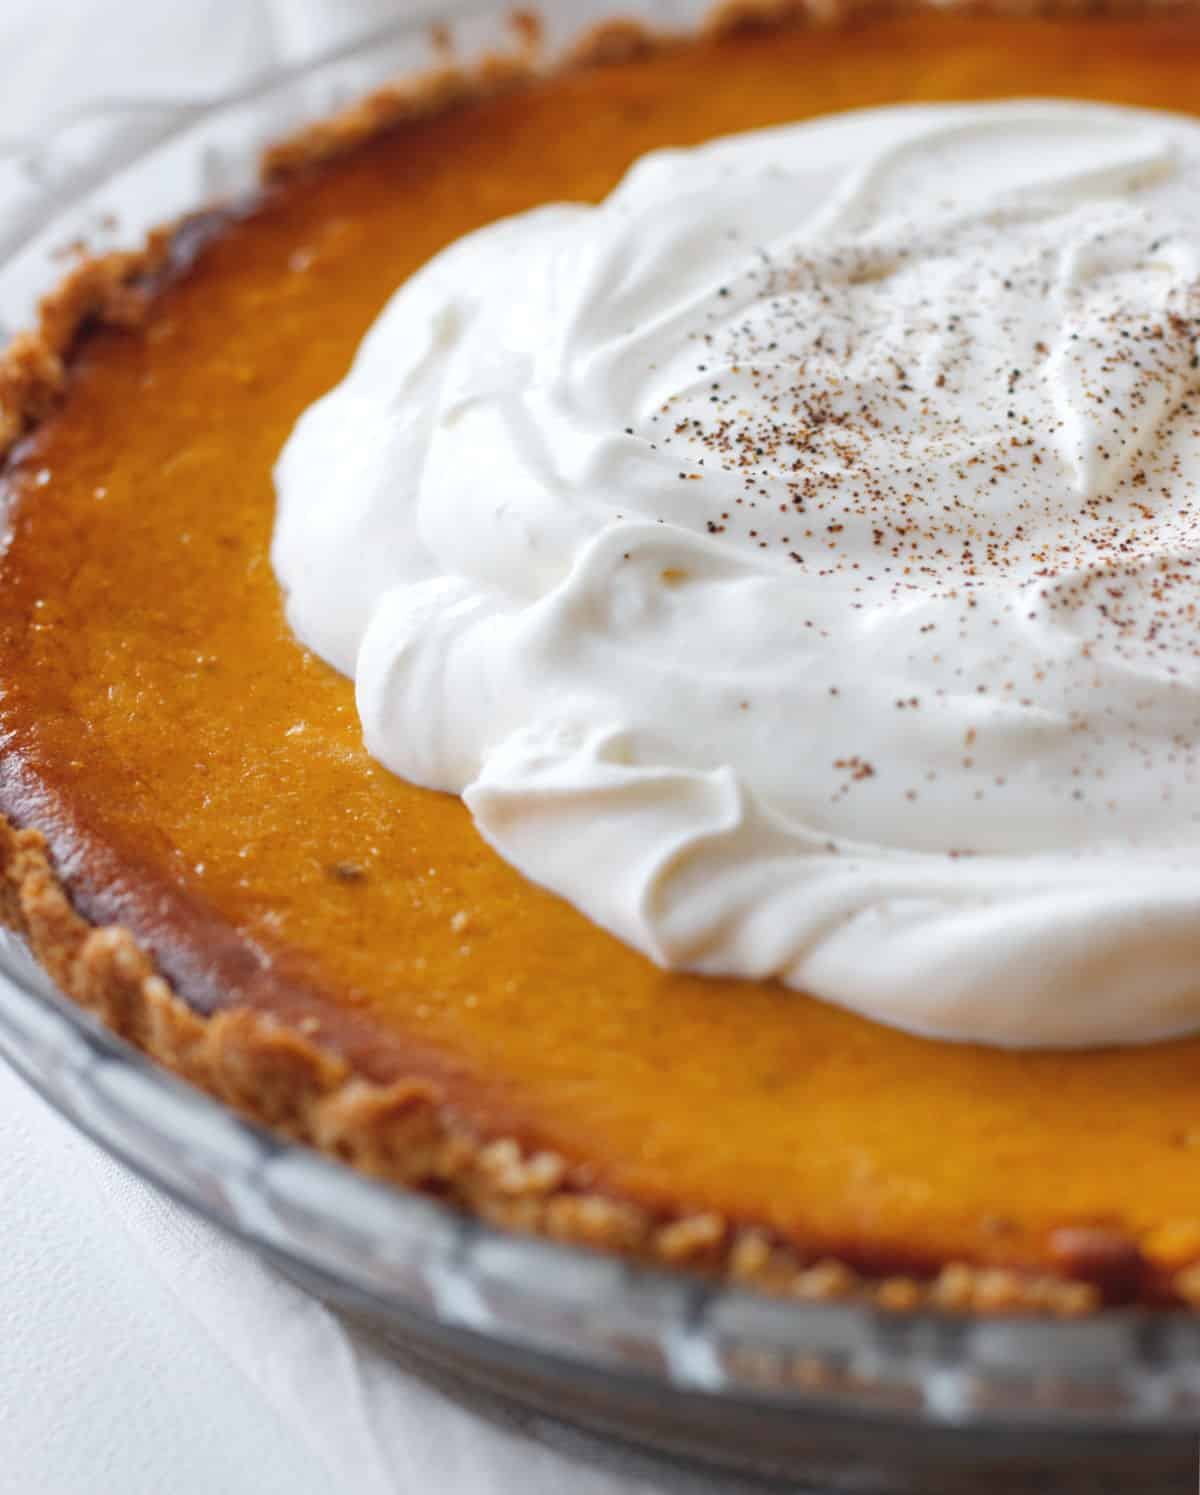 Partial view of a whole pumpkin pie topped with whipped cream